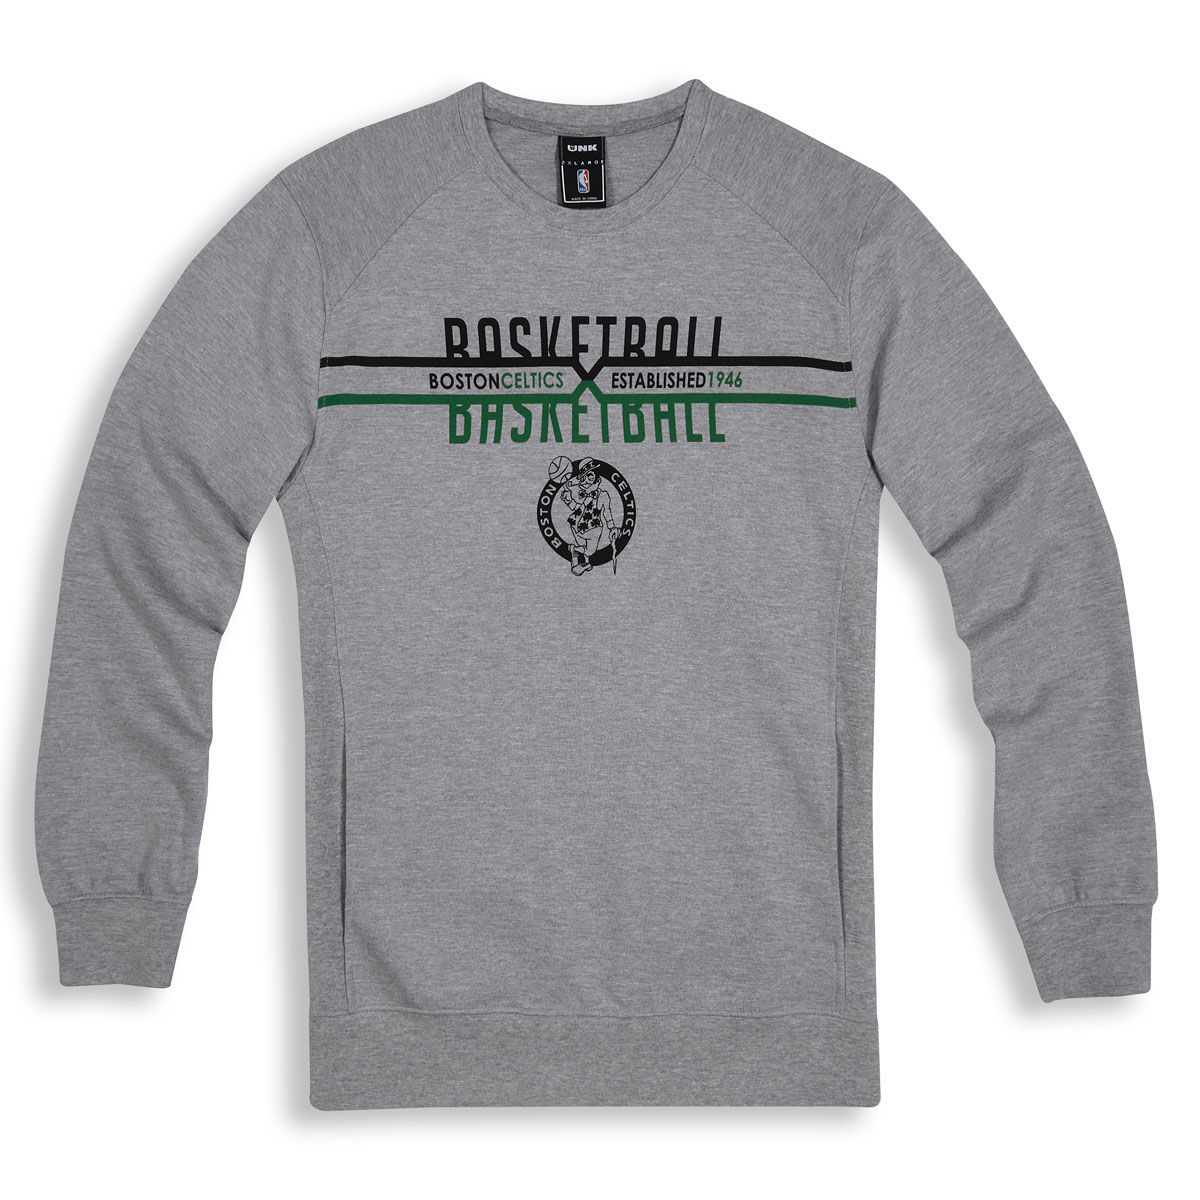 Boston Celtics Adult Crew Sweatshirt